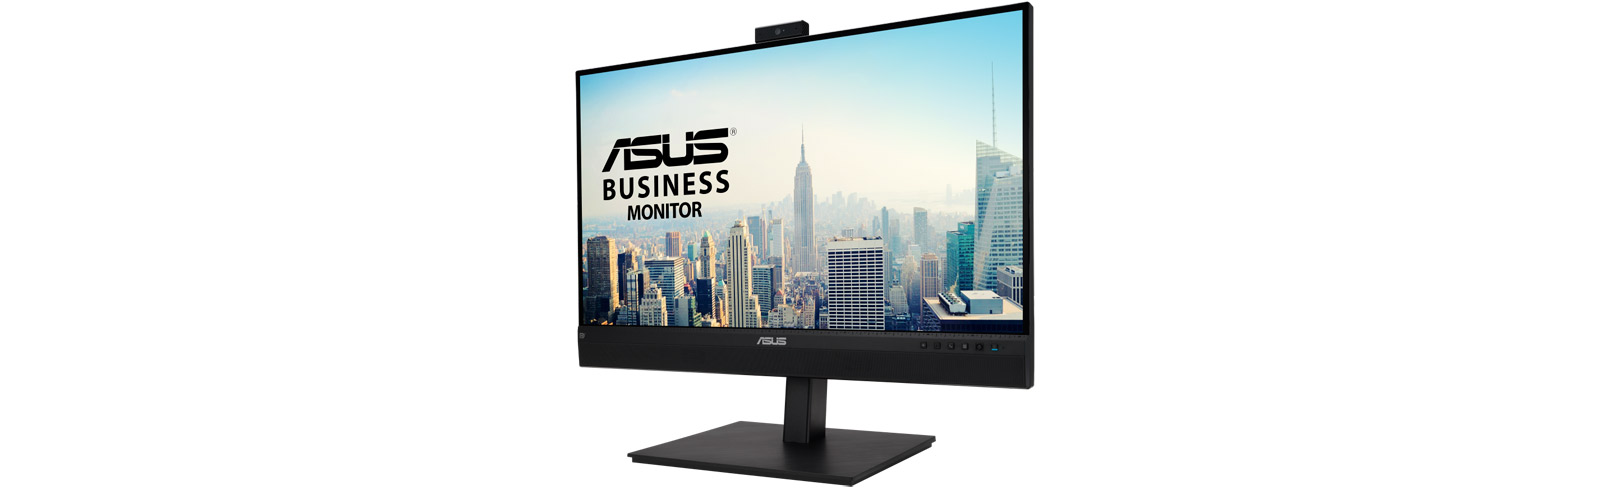 The Asus BE27ACSBK for video conferencing is unveiled